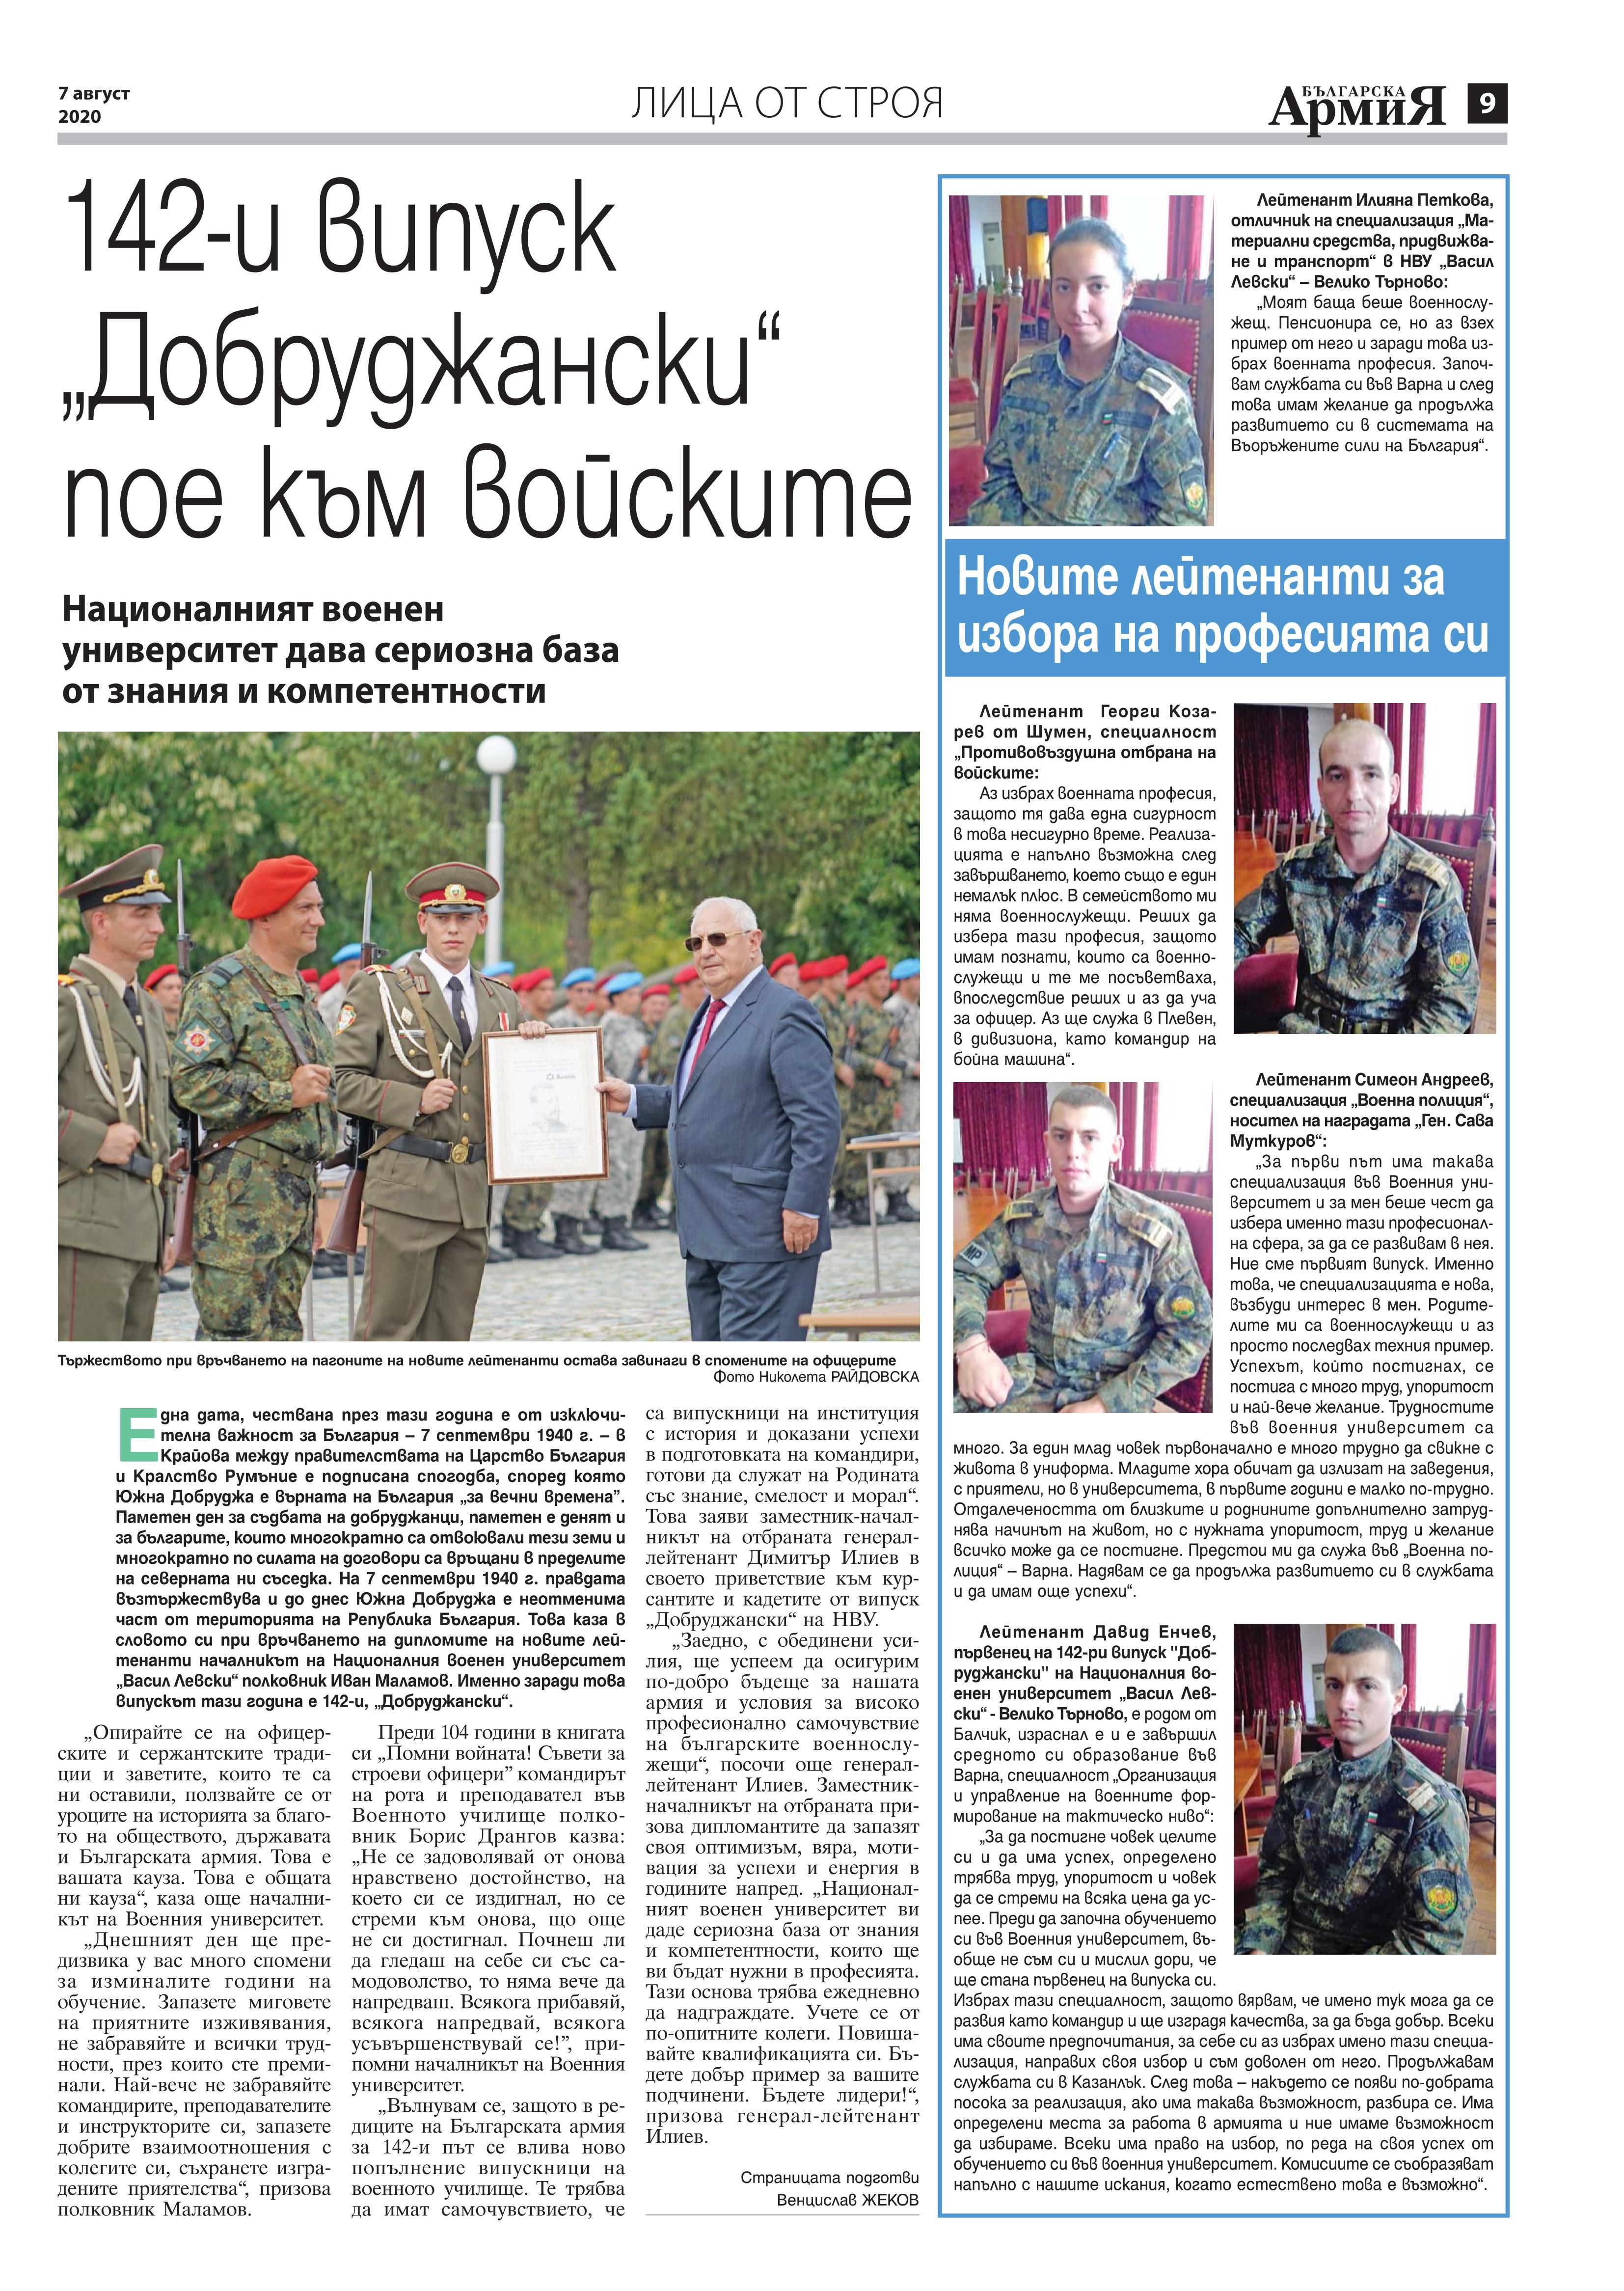 https://www.armymedia.bg/wp-content/uploads/2015/06/09.page1_-147.jpg